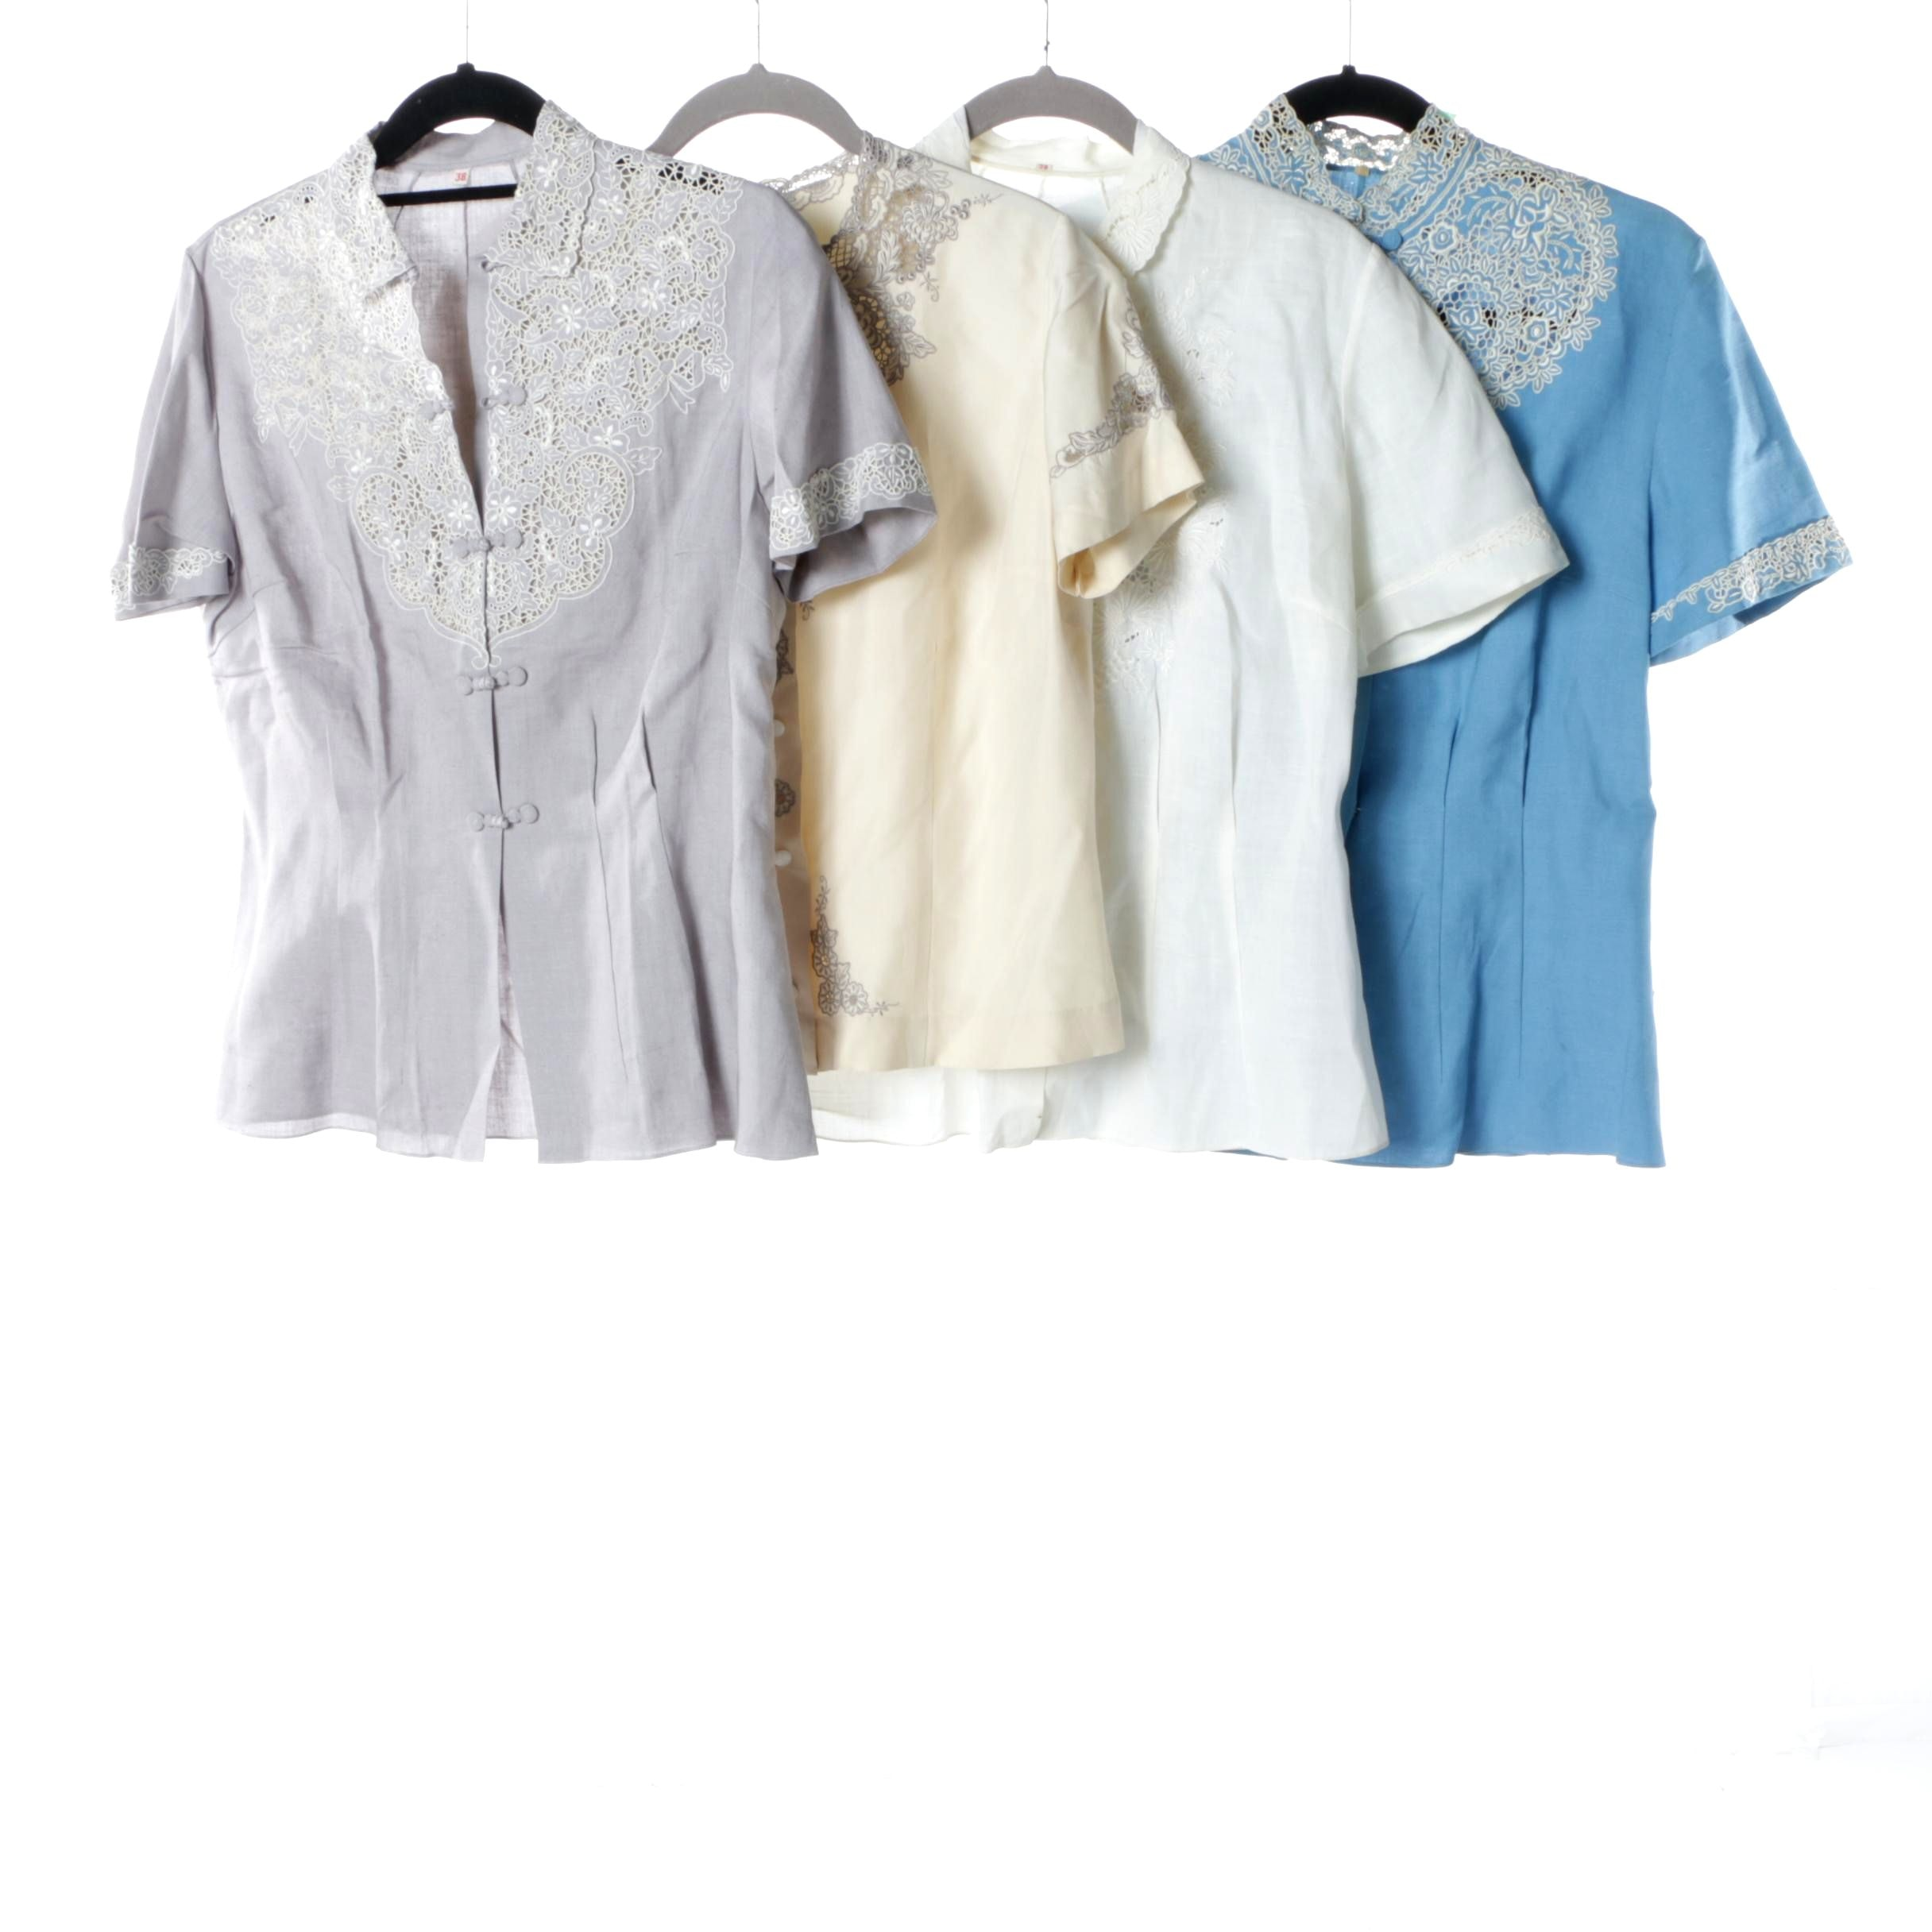 Women's Vintage Lace Embellished Short Sleeve Blouses